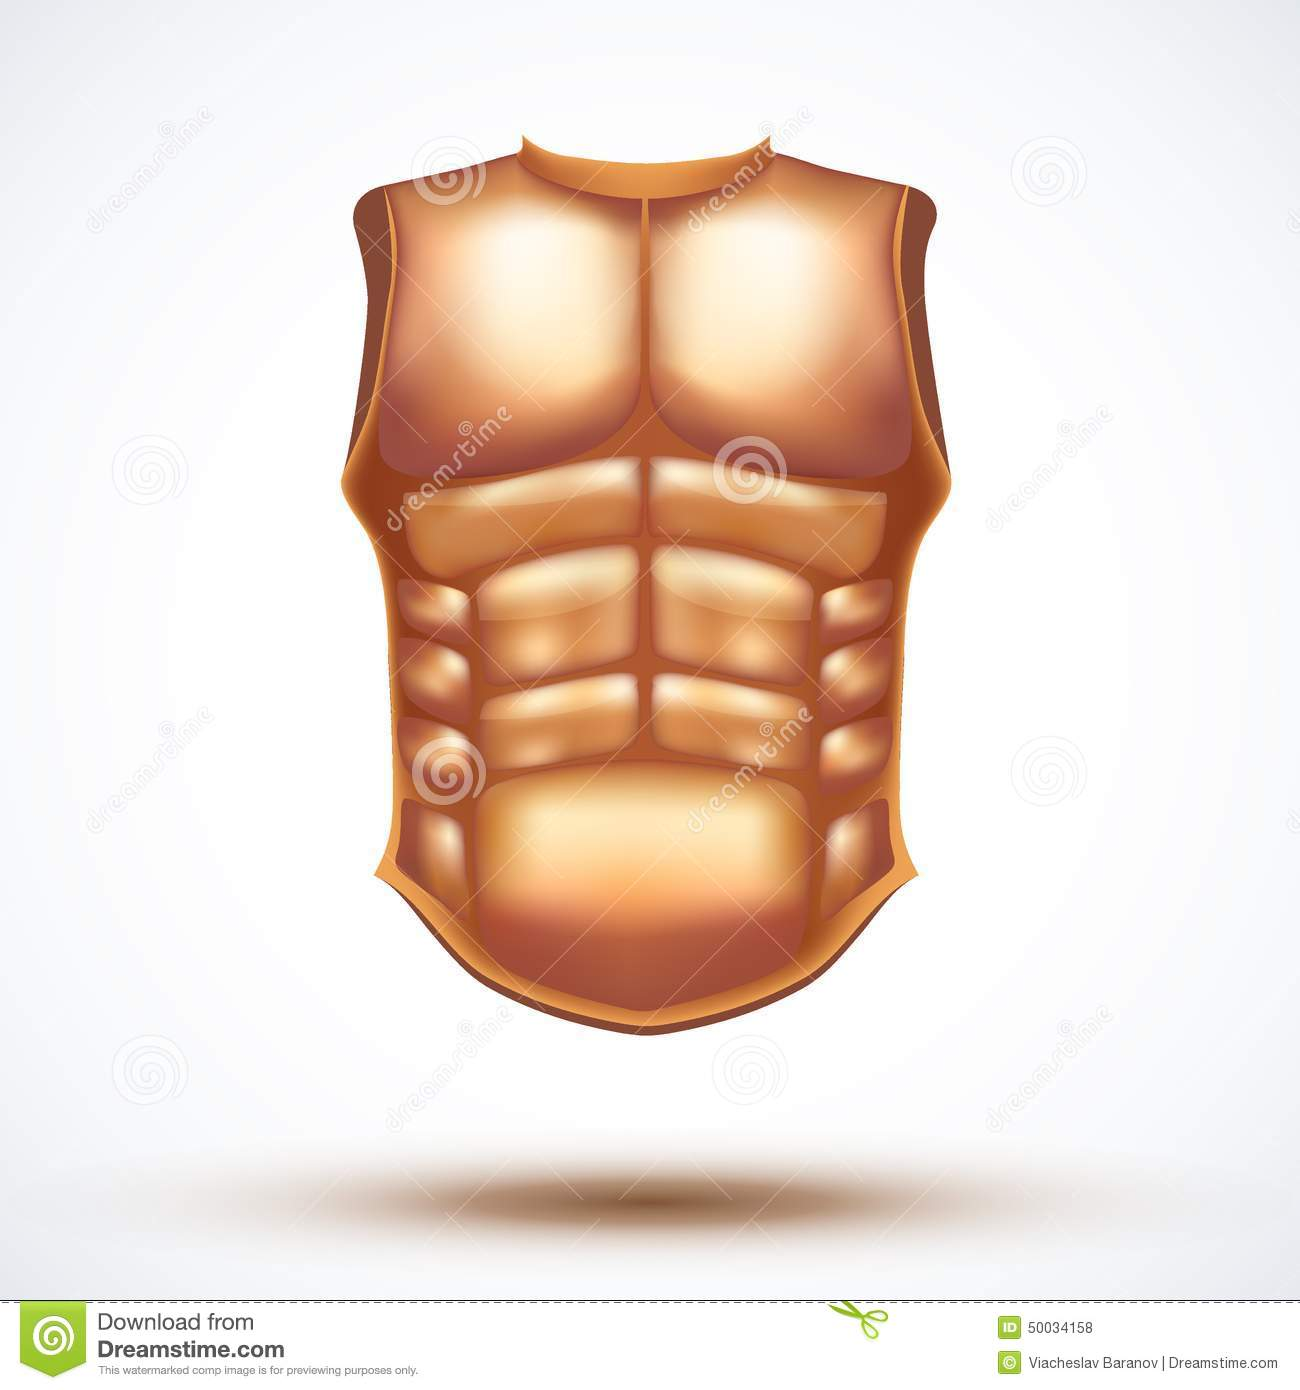 Golden Ancient Gladiator Body Armor Stock Vector - Illustration of ...